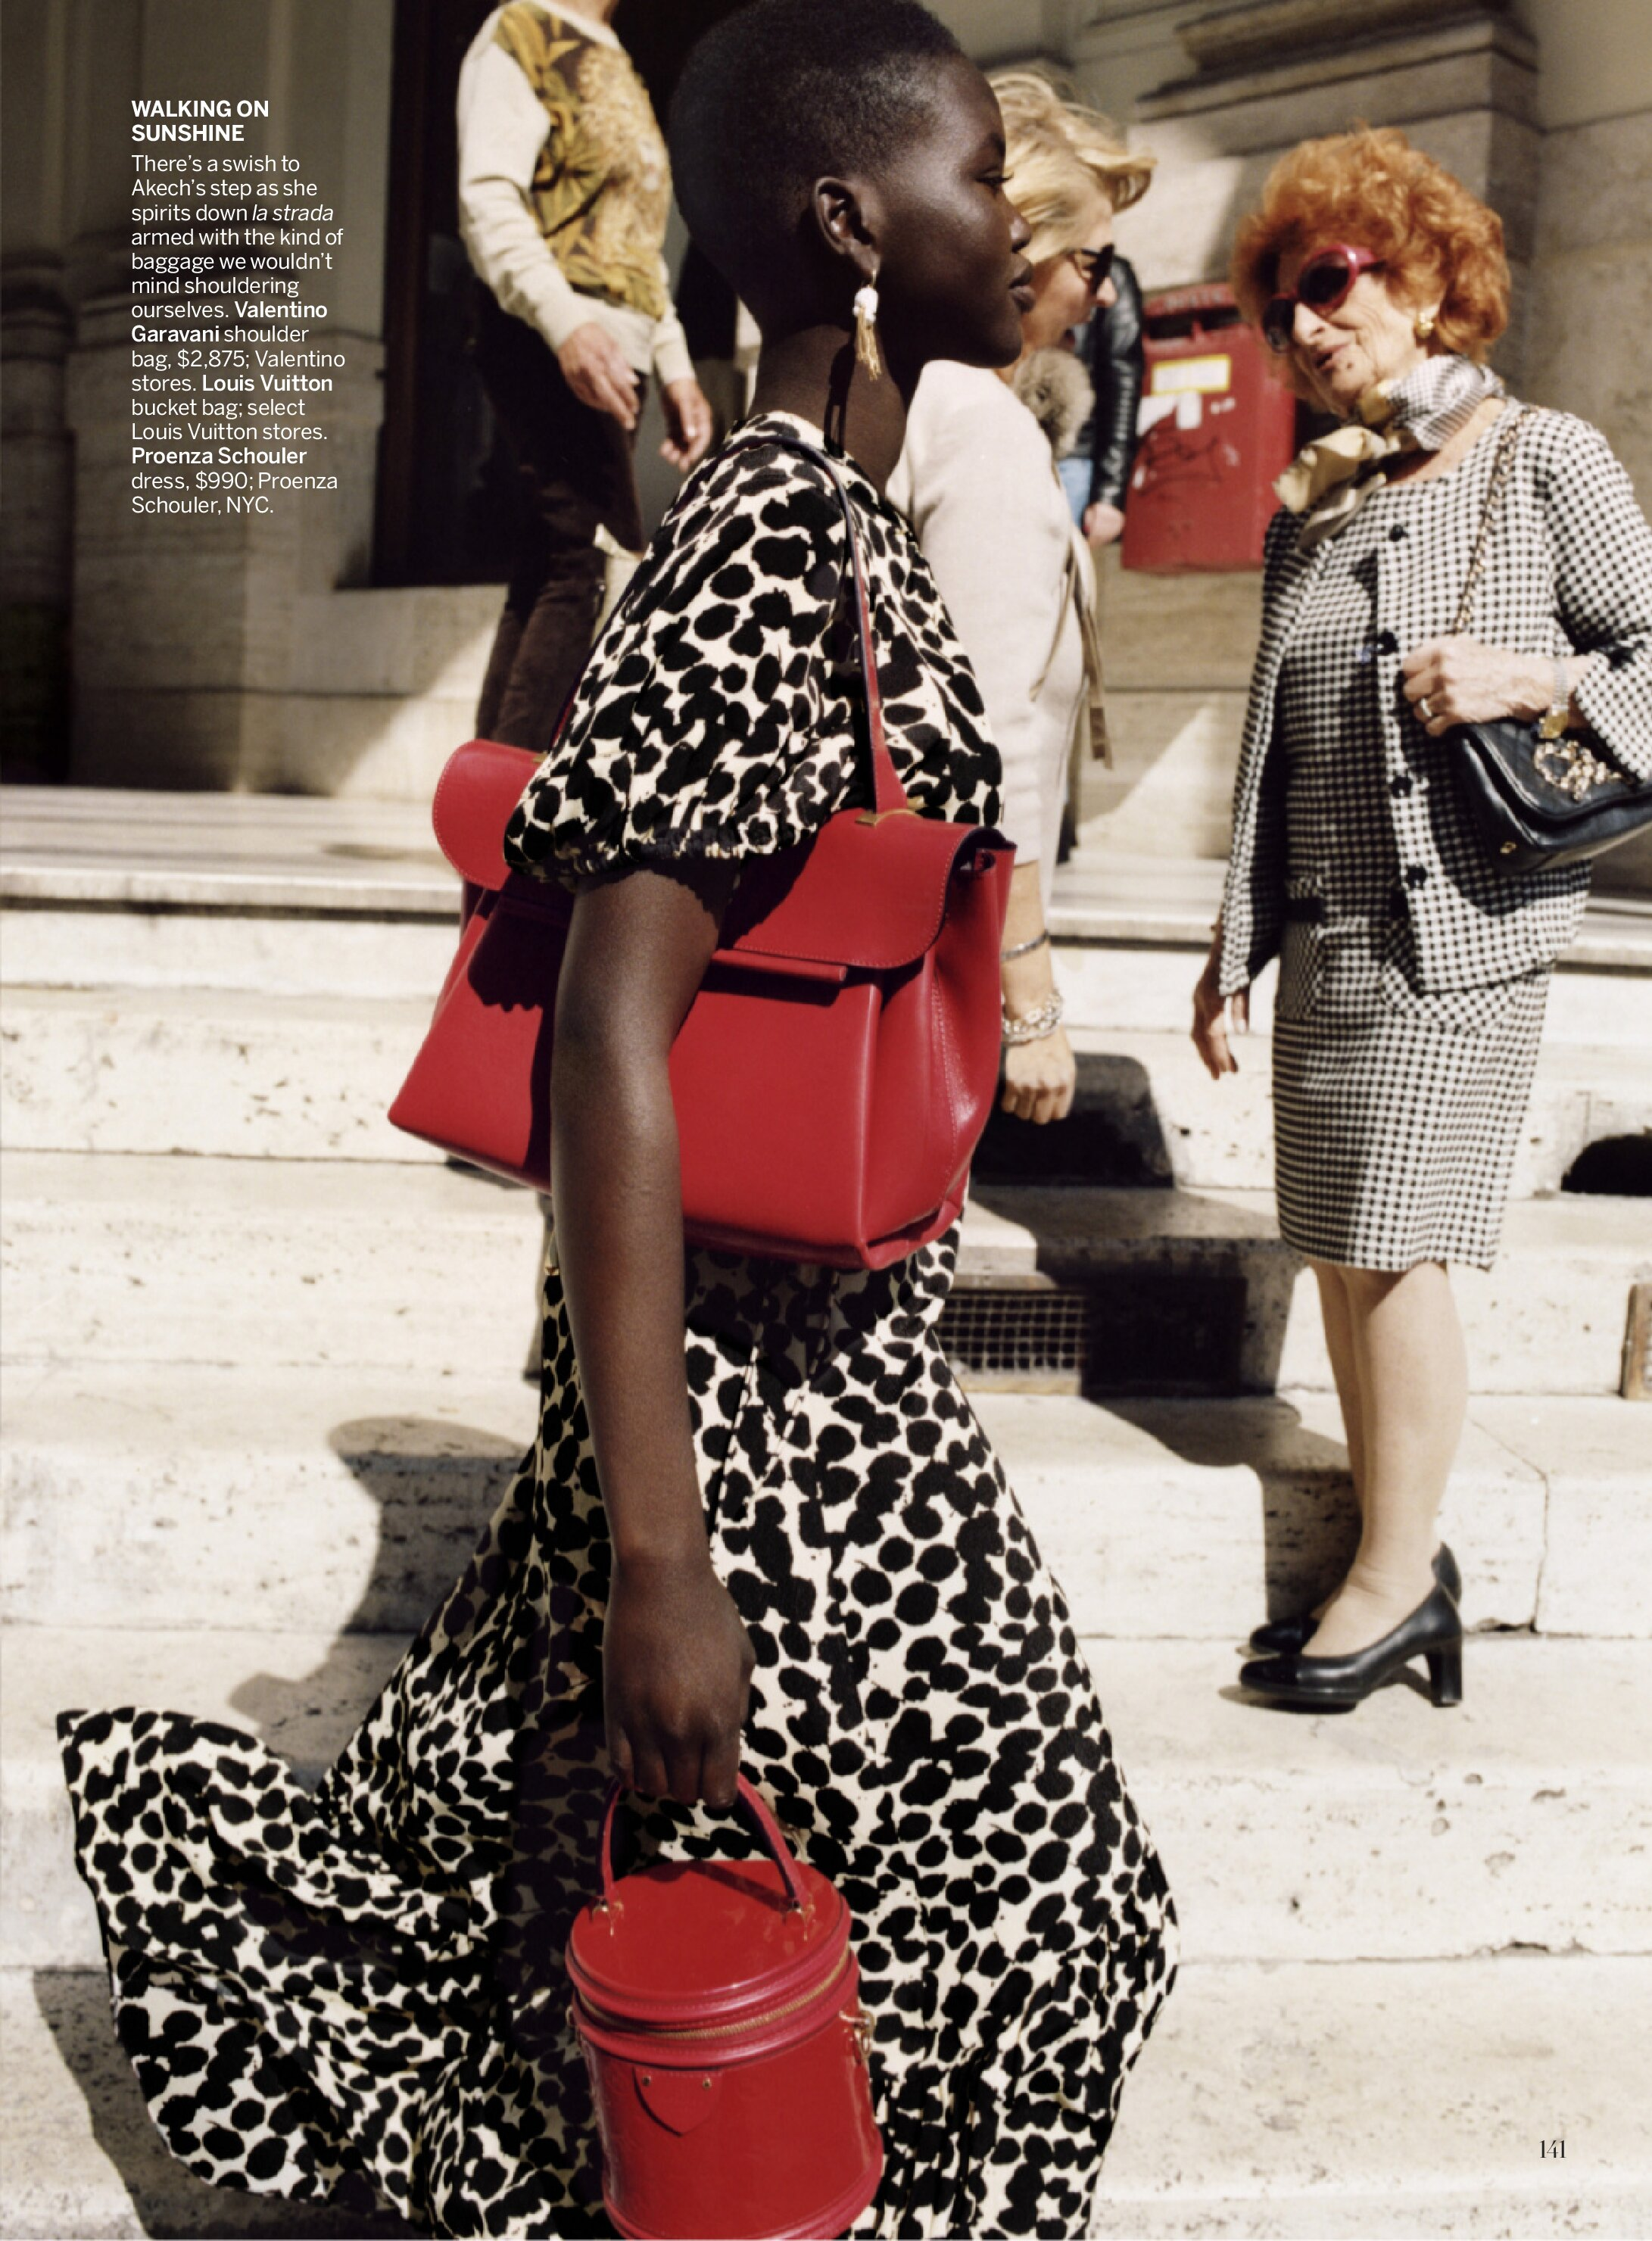 Adut Akech by Angelo Pennetta in Italy for American Vogue.